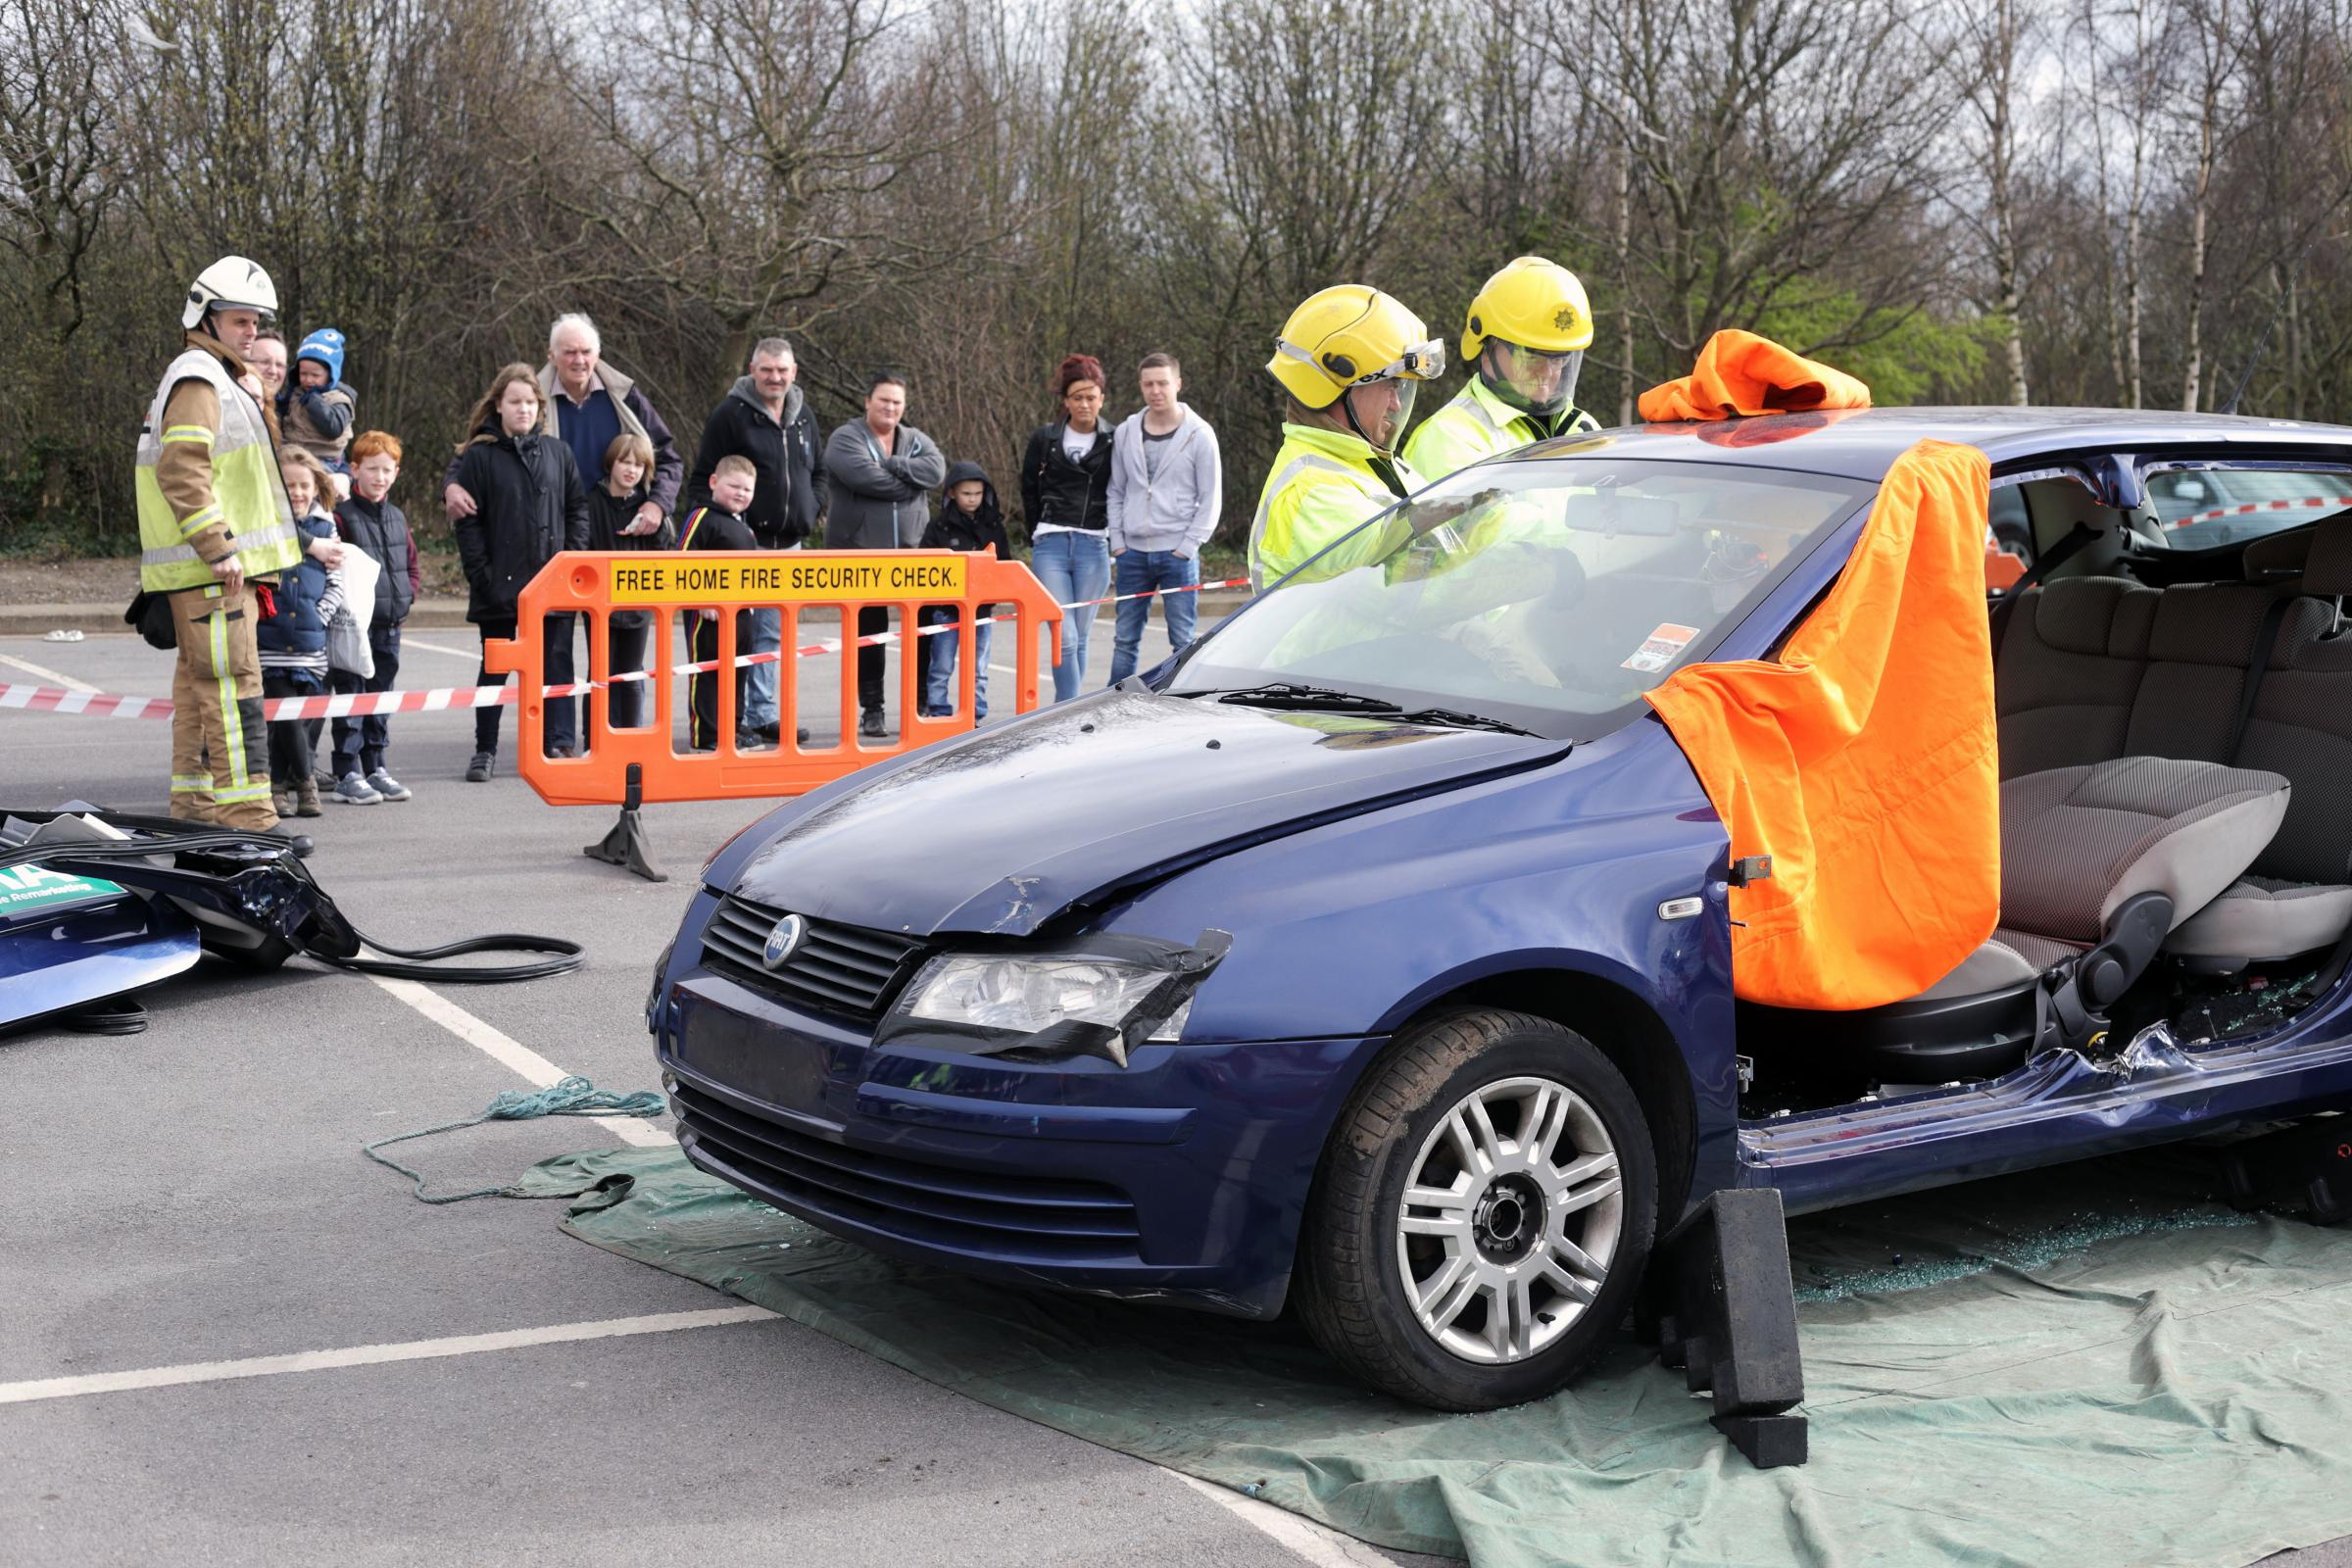 Fire fighters demonstrate rescue techniques during a road safety roadshow in Darlington